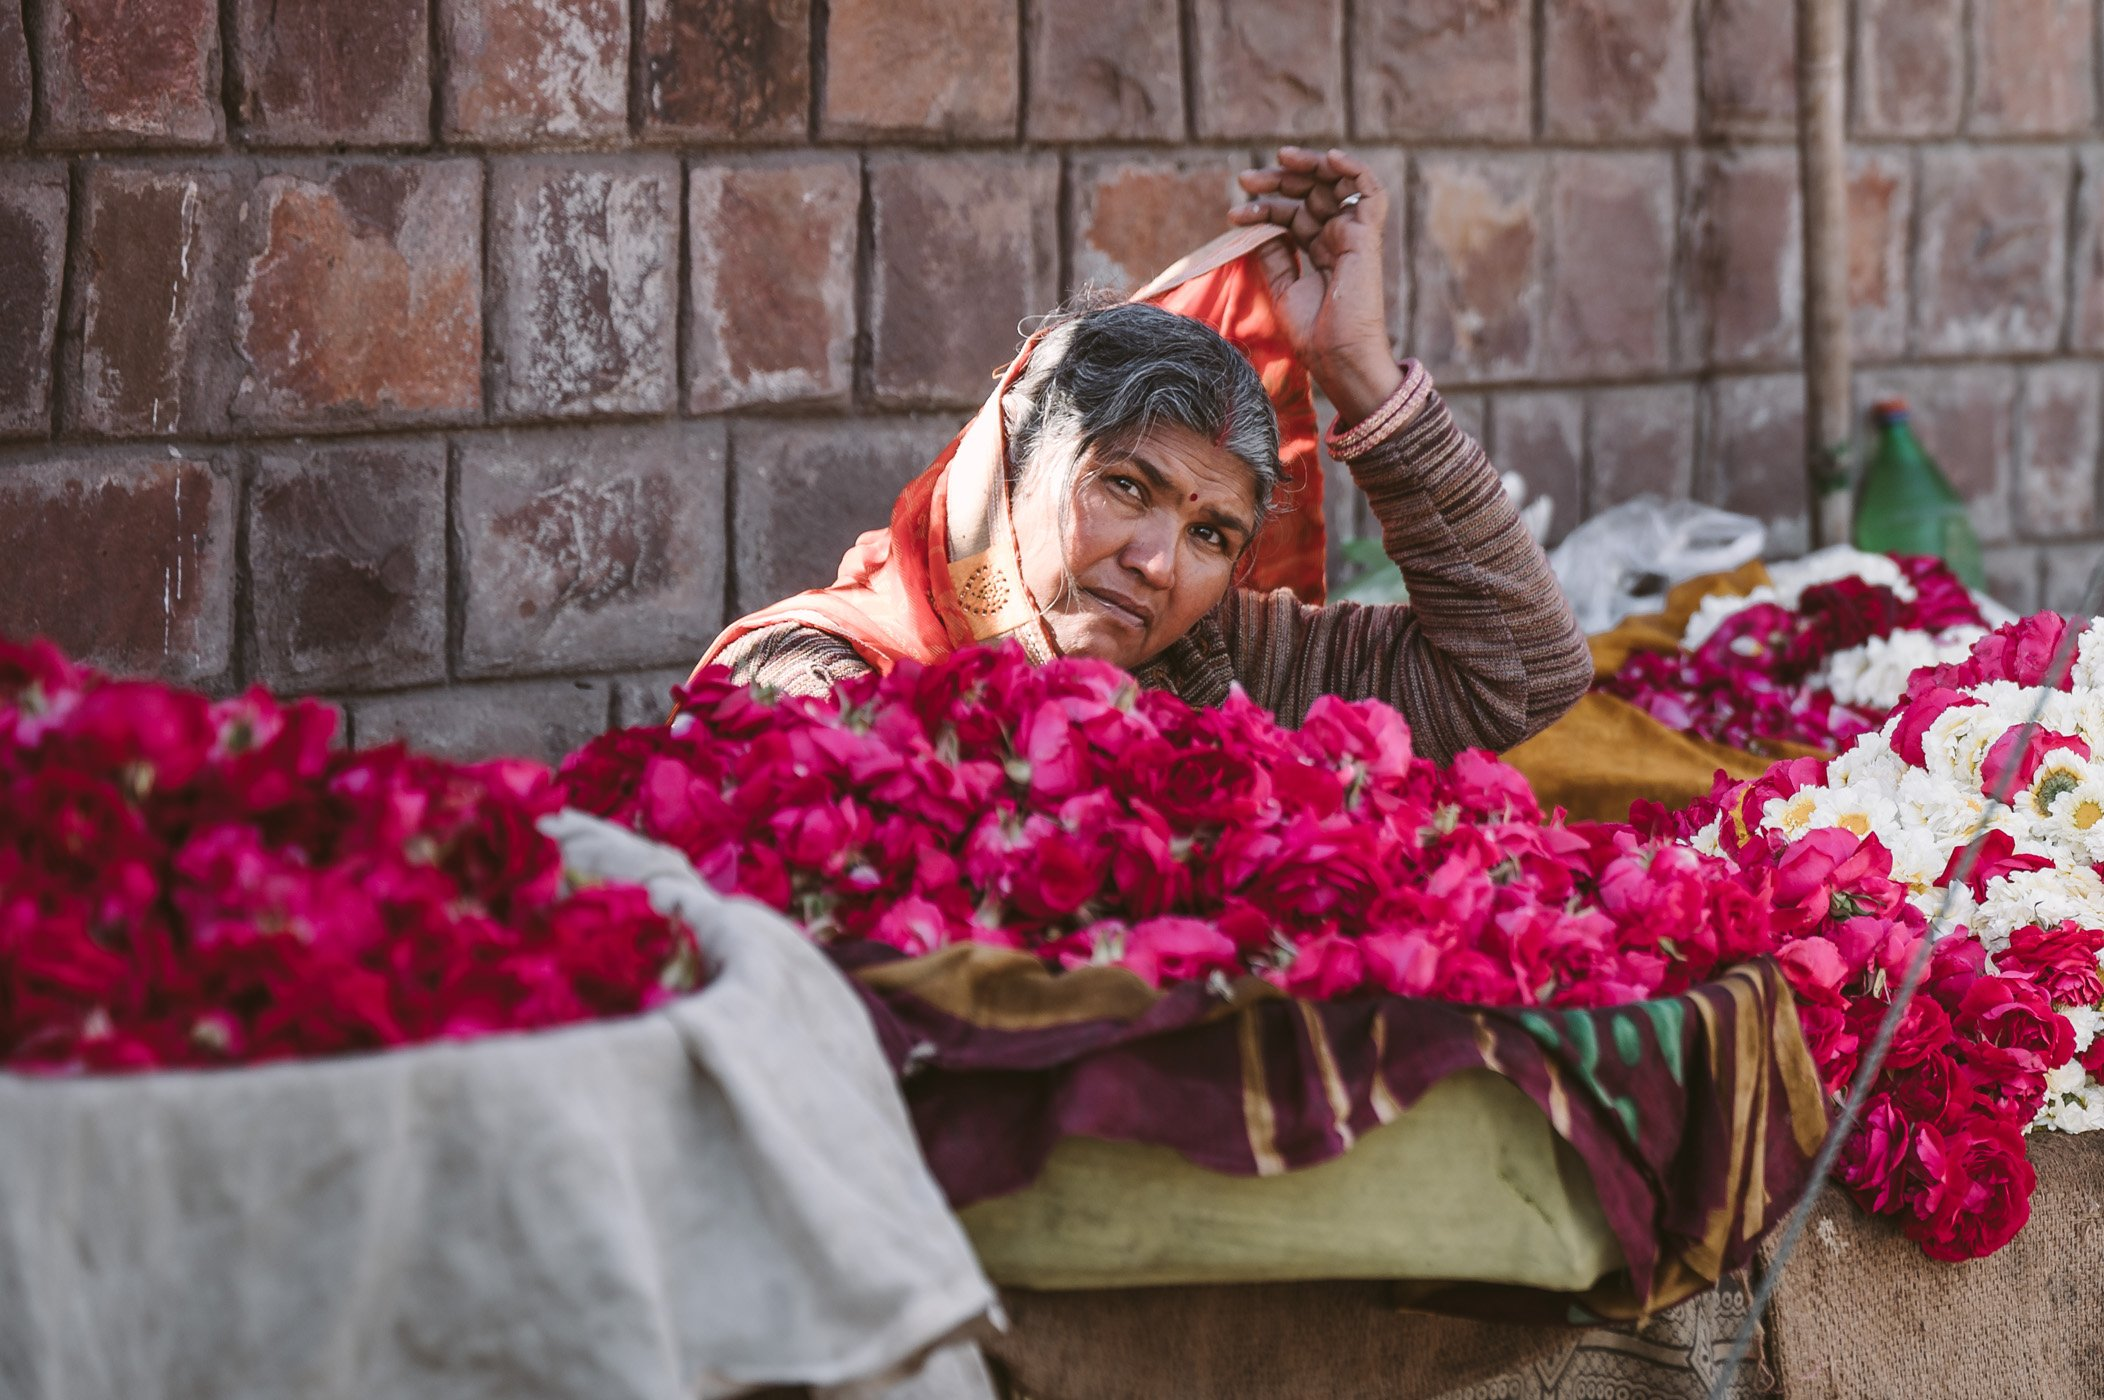 Roses at a street stall in Rajasthan India